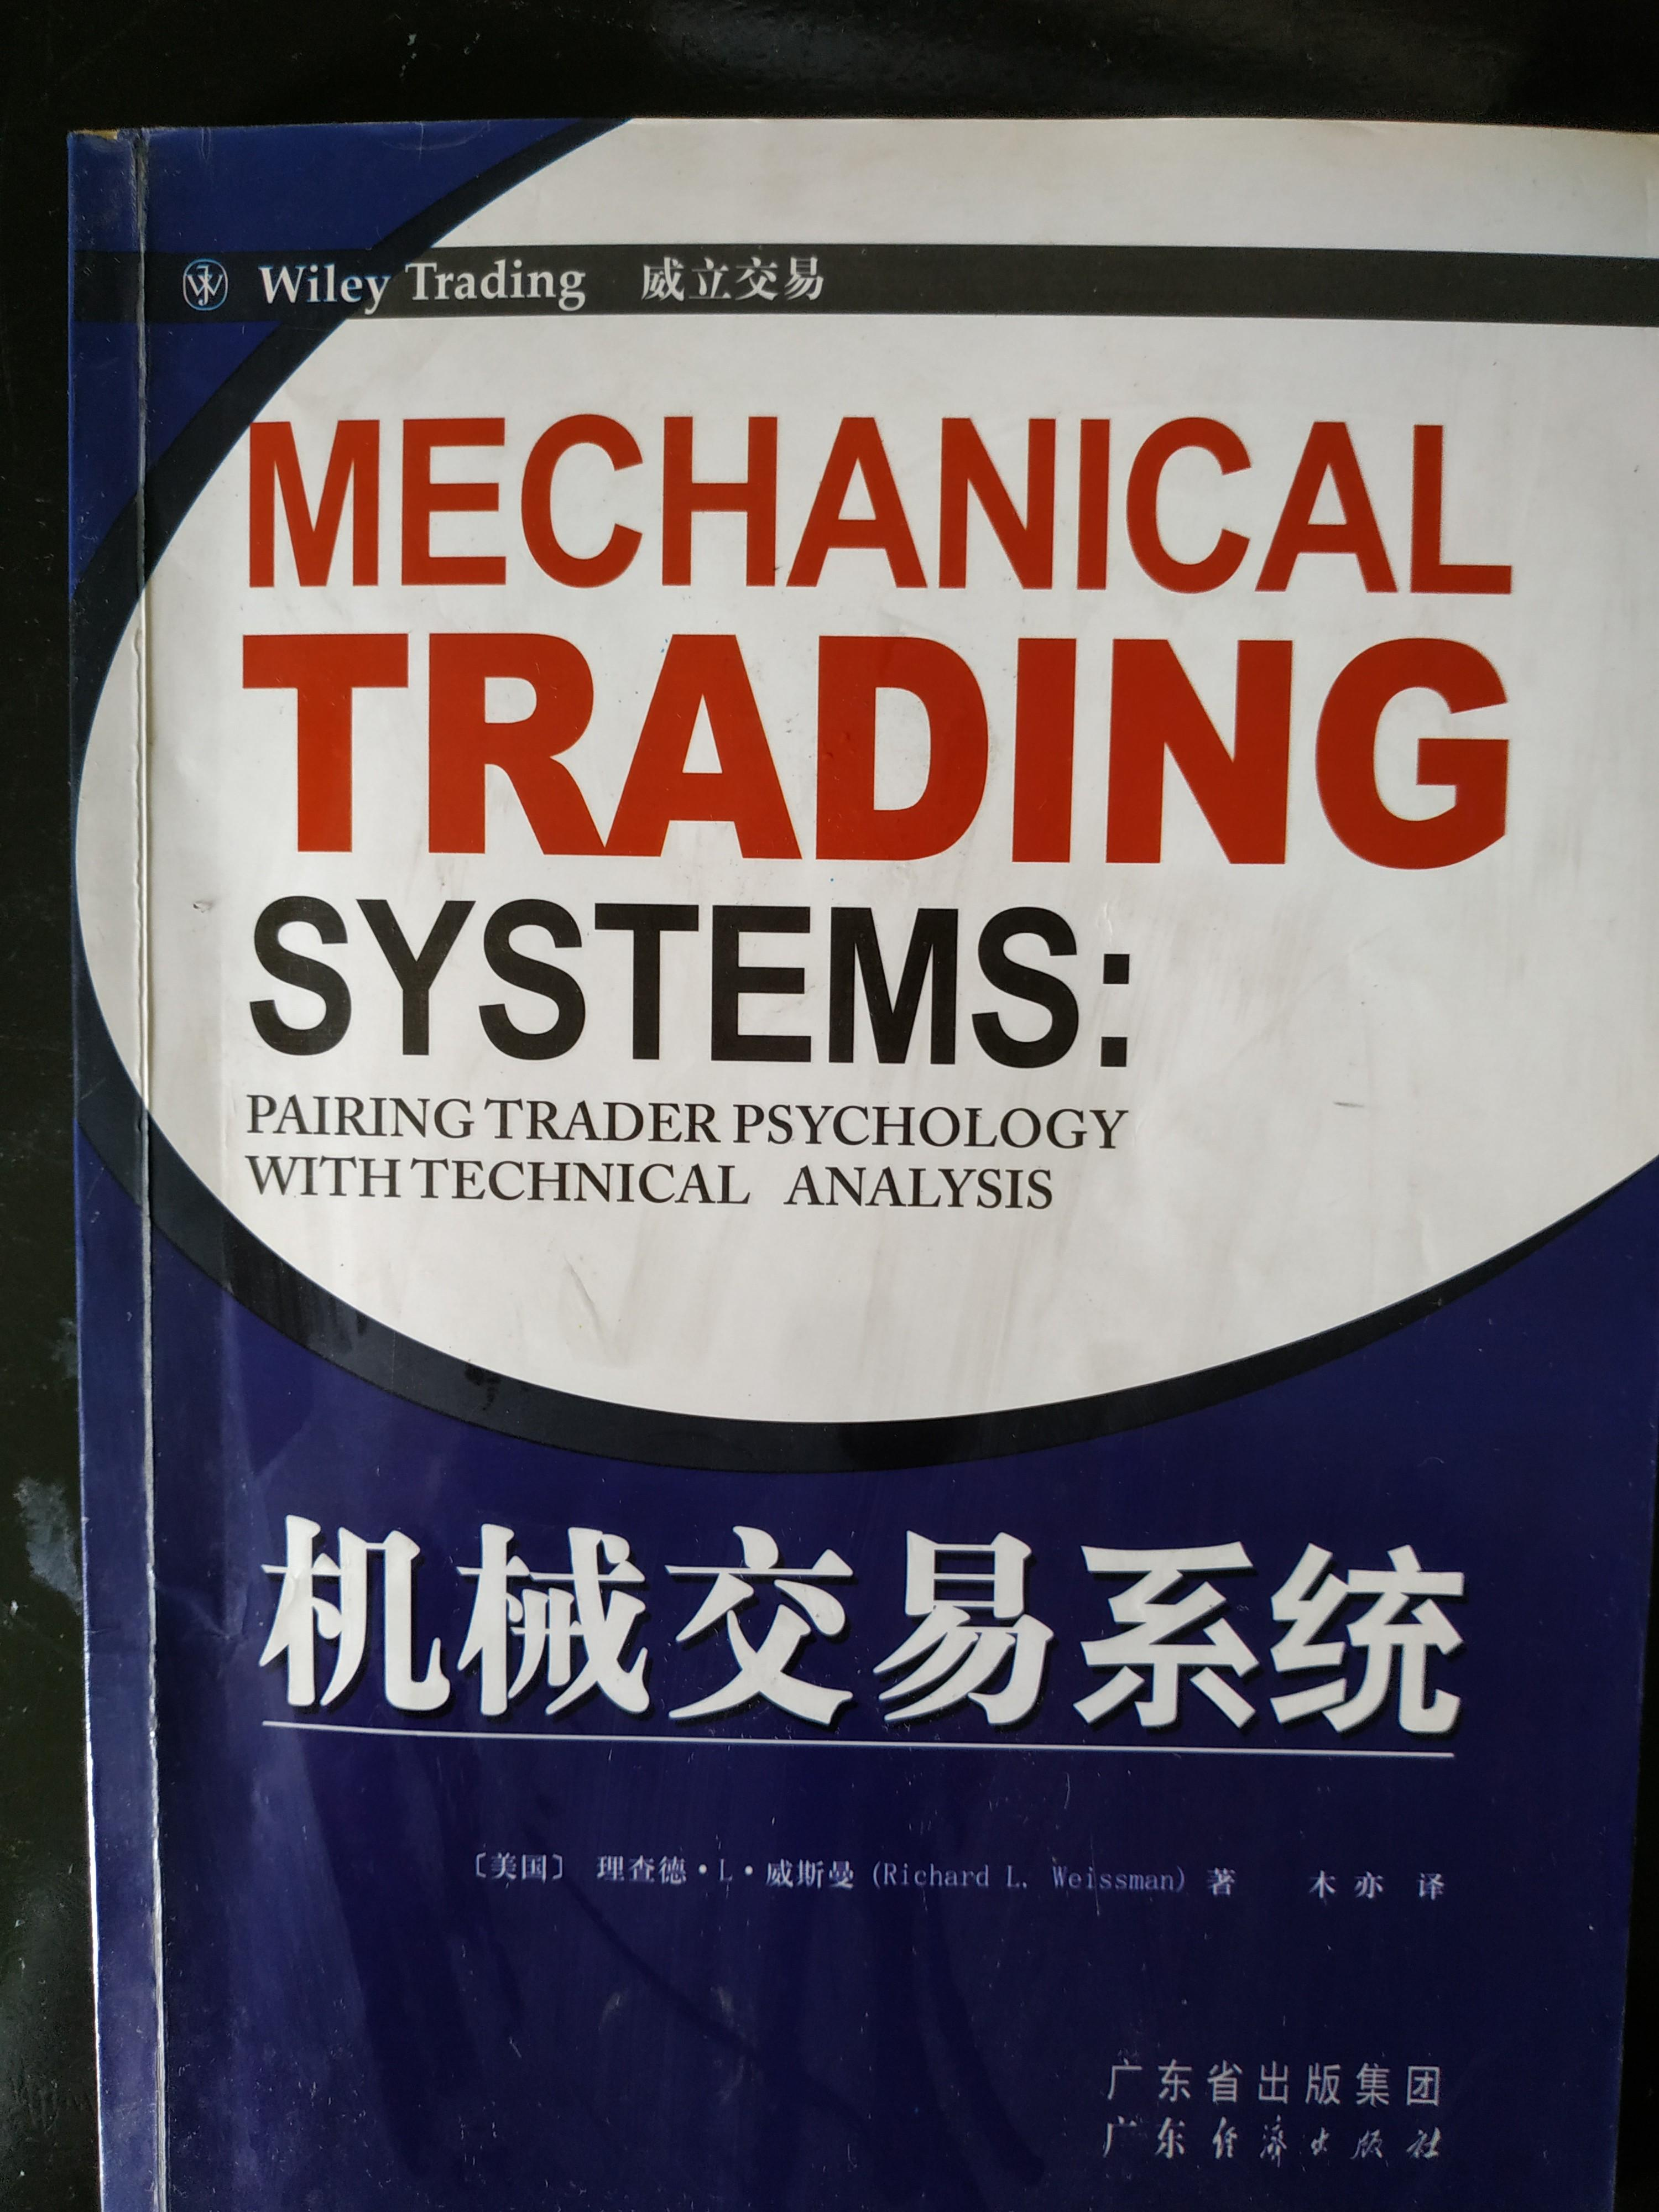 Mechanical Trading Systems Pairing Trader Psychology with Technical Analysis - RICHARD L WEISSMAN